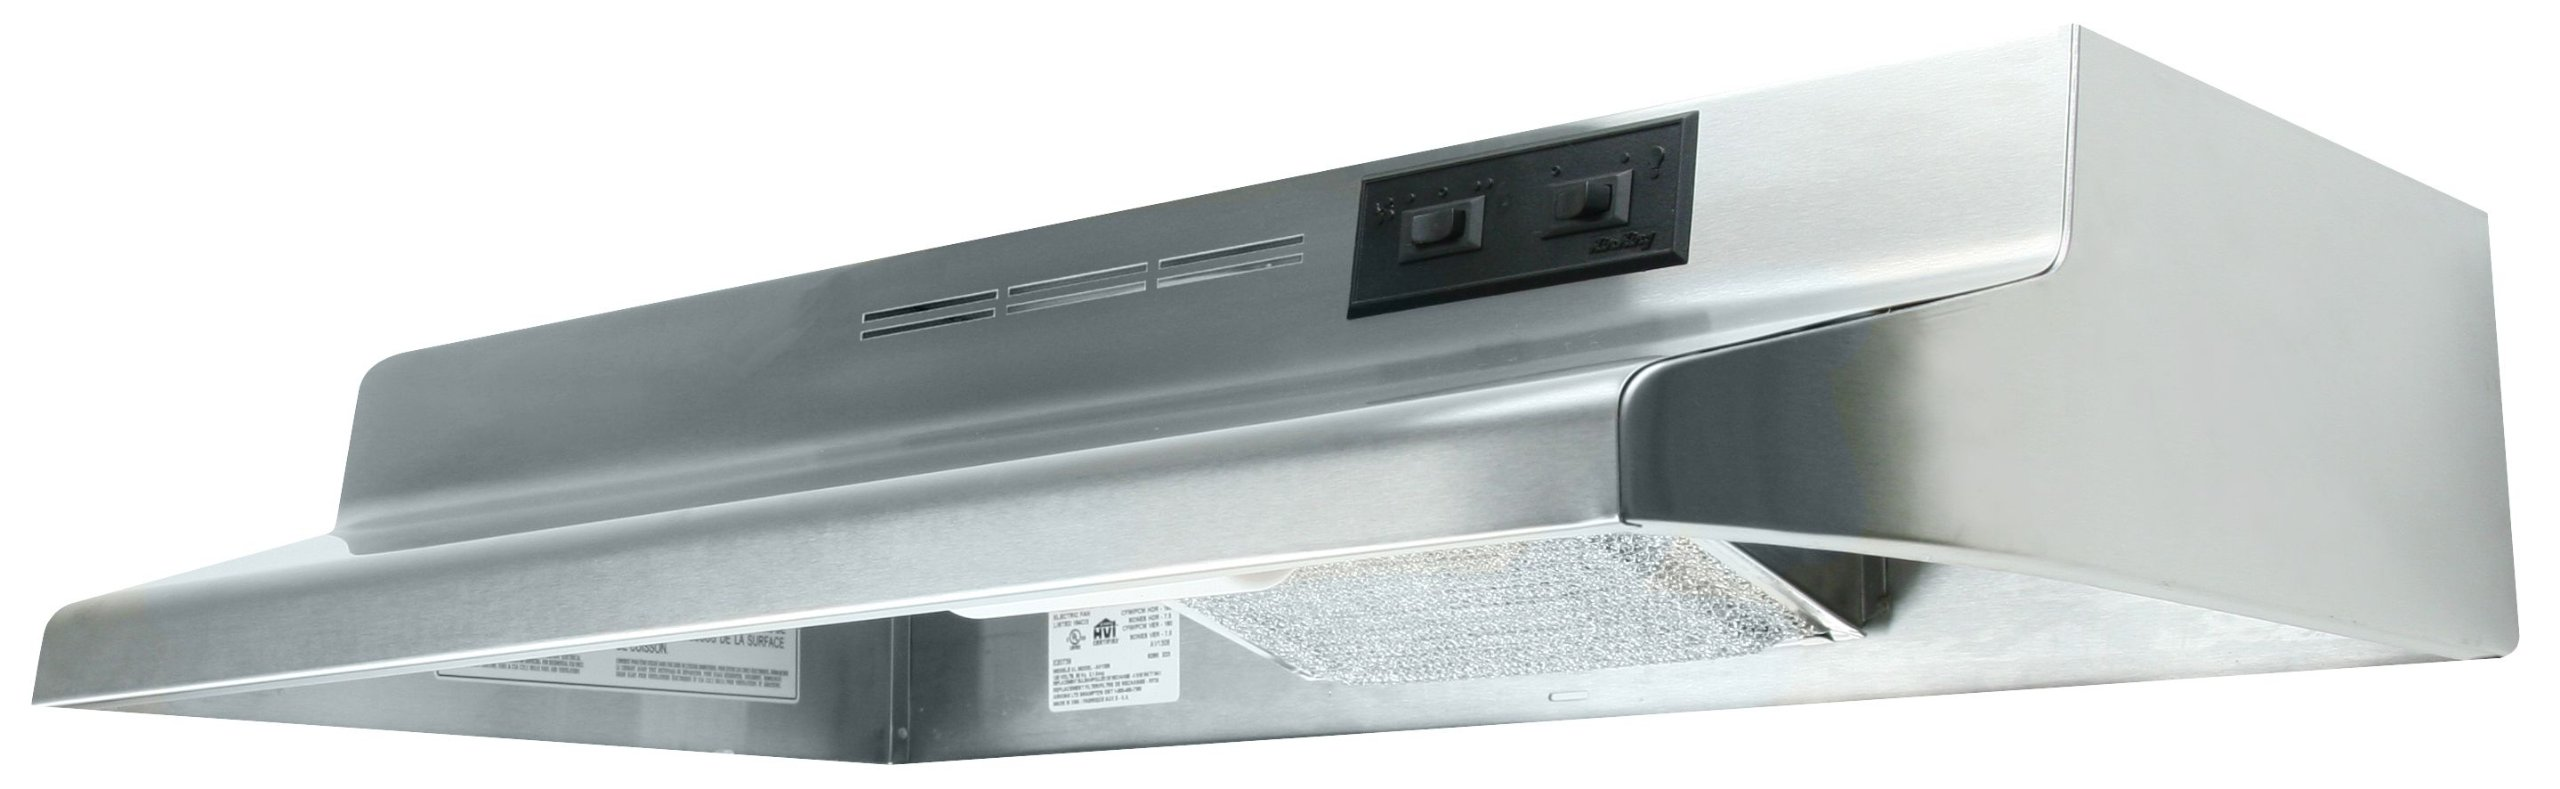 Quiet Zone Stainless Steel 30'' Wide 2 Speed Under Cabinet Range Hood California Title 24 Acceptable